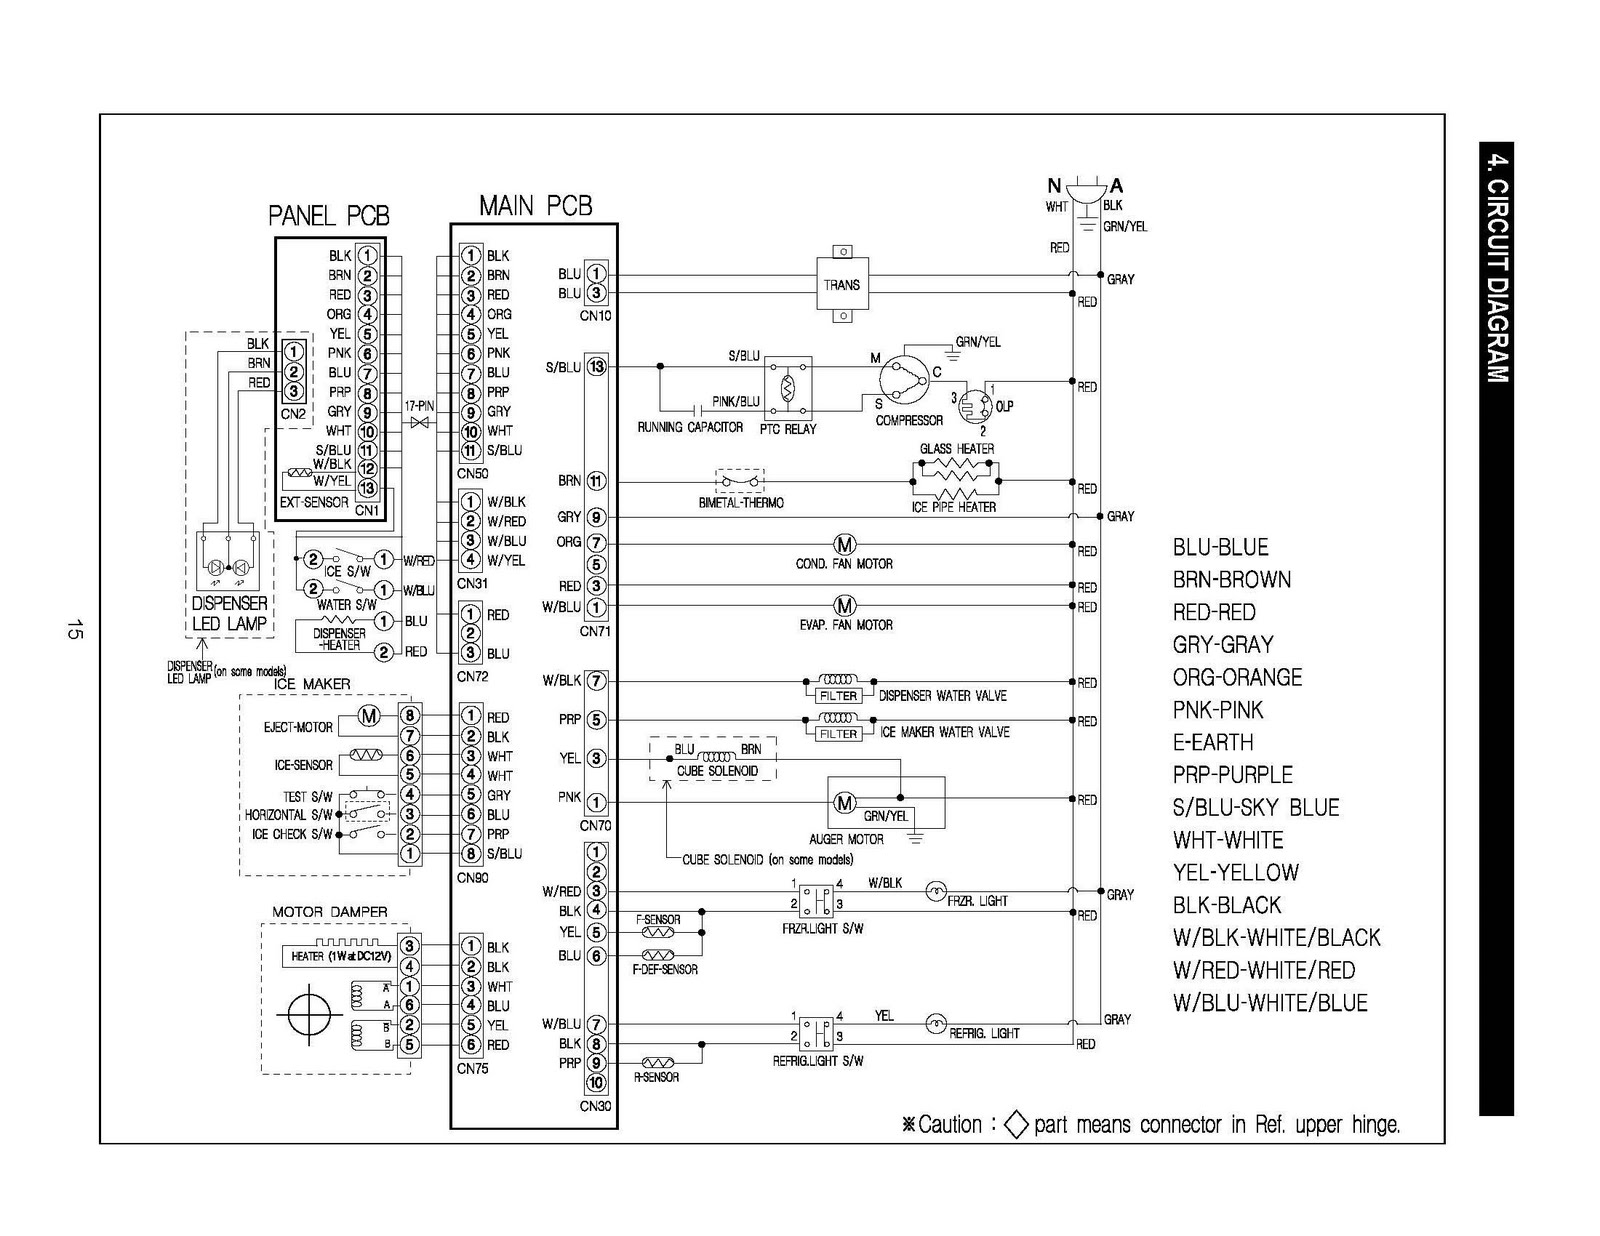 Whirlpool 6Wri24Wk Electrical Circuit Diagram